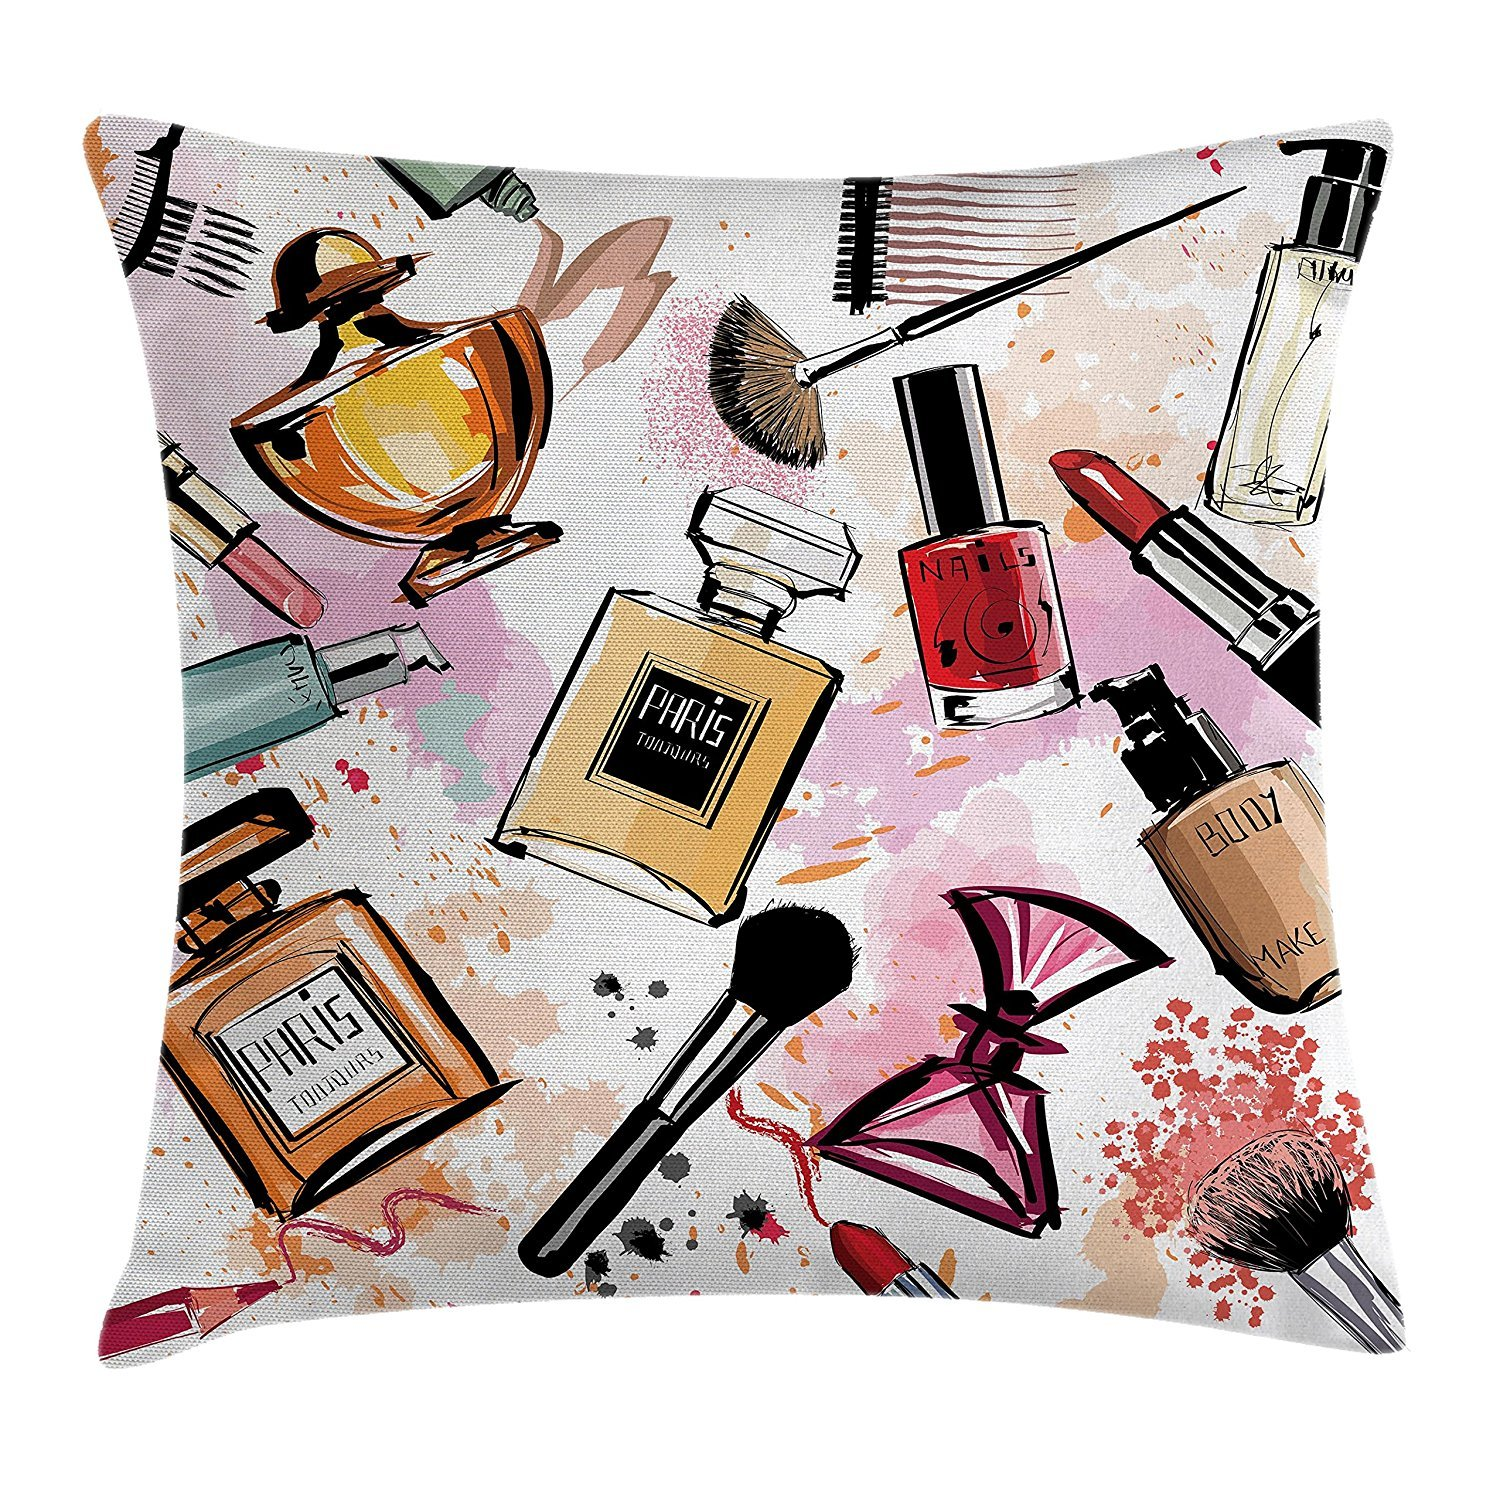 Girly Decor Throw Pillow Cushion Cover, Cosmetic Make up Theme Pattern Perfume and Lipstick Nail Polish Brush Modern City, Decorative Square Accent Pillow Case, 18 X 18 inches, Multi Cool pillow